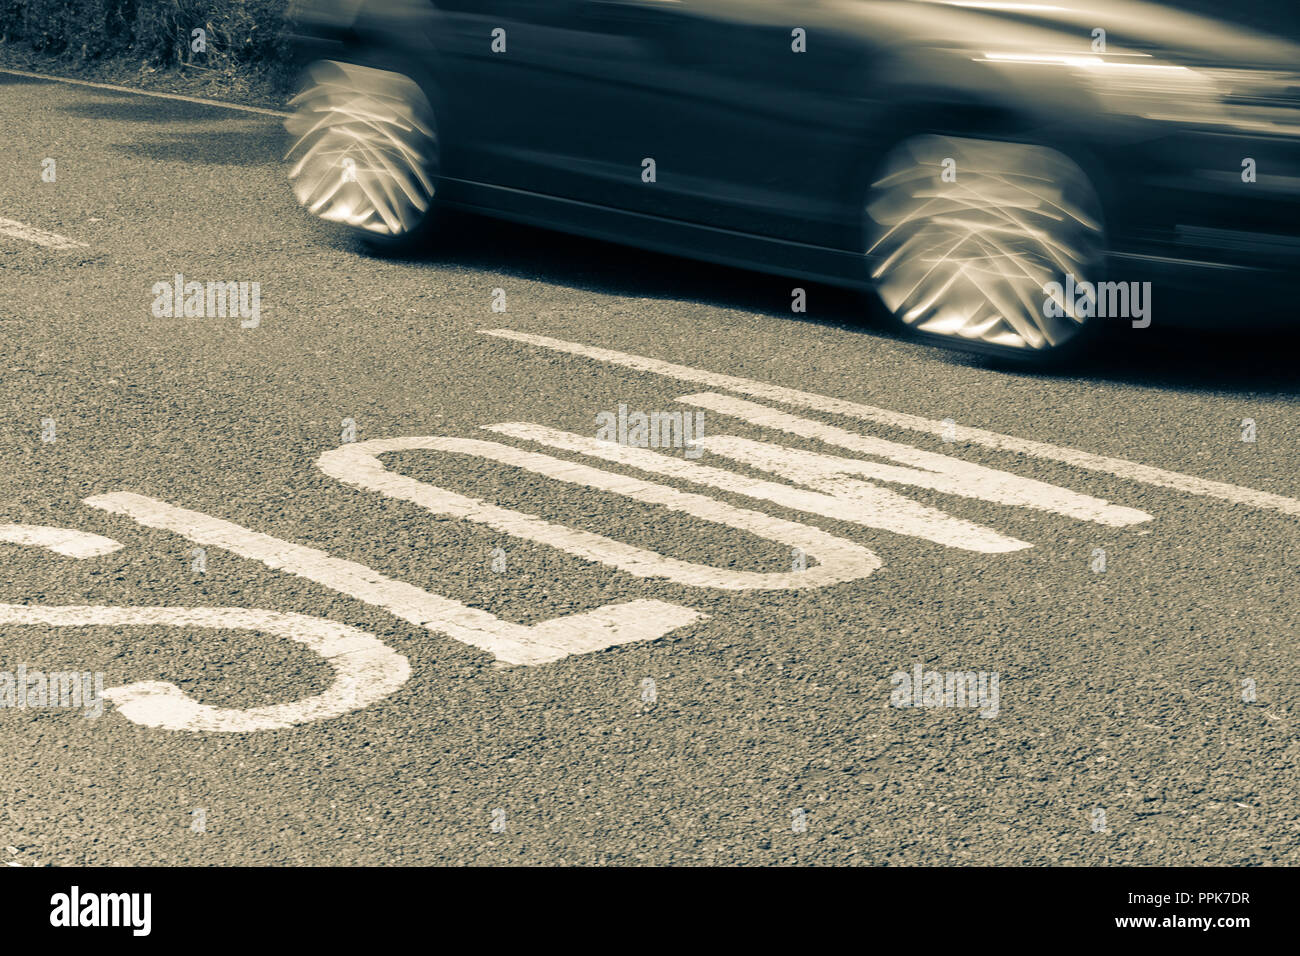 blurred car moving past road markings reading Slow Stock Photo